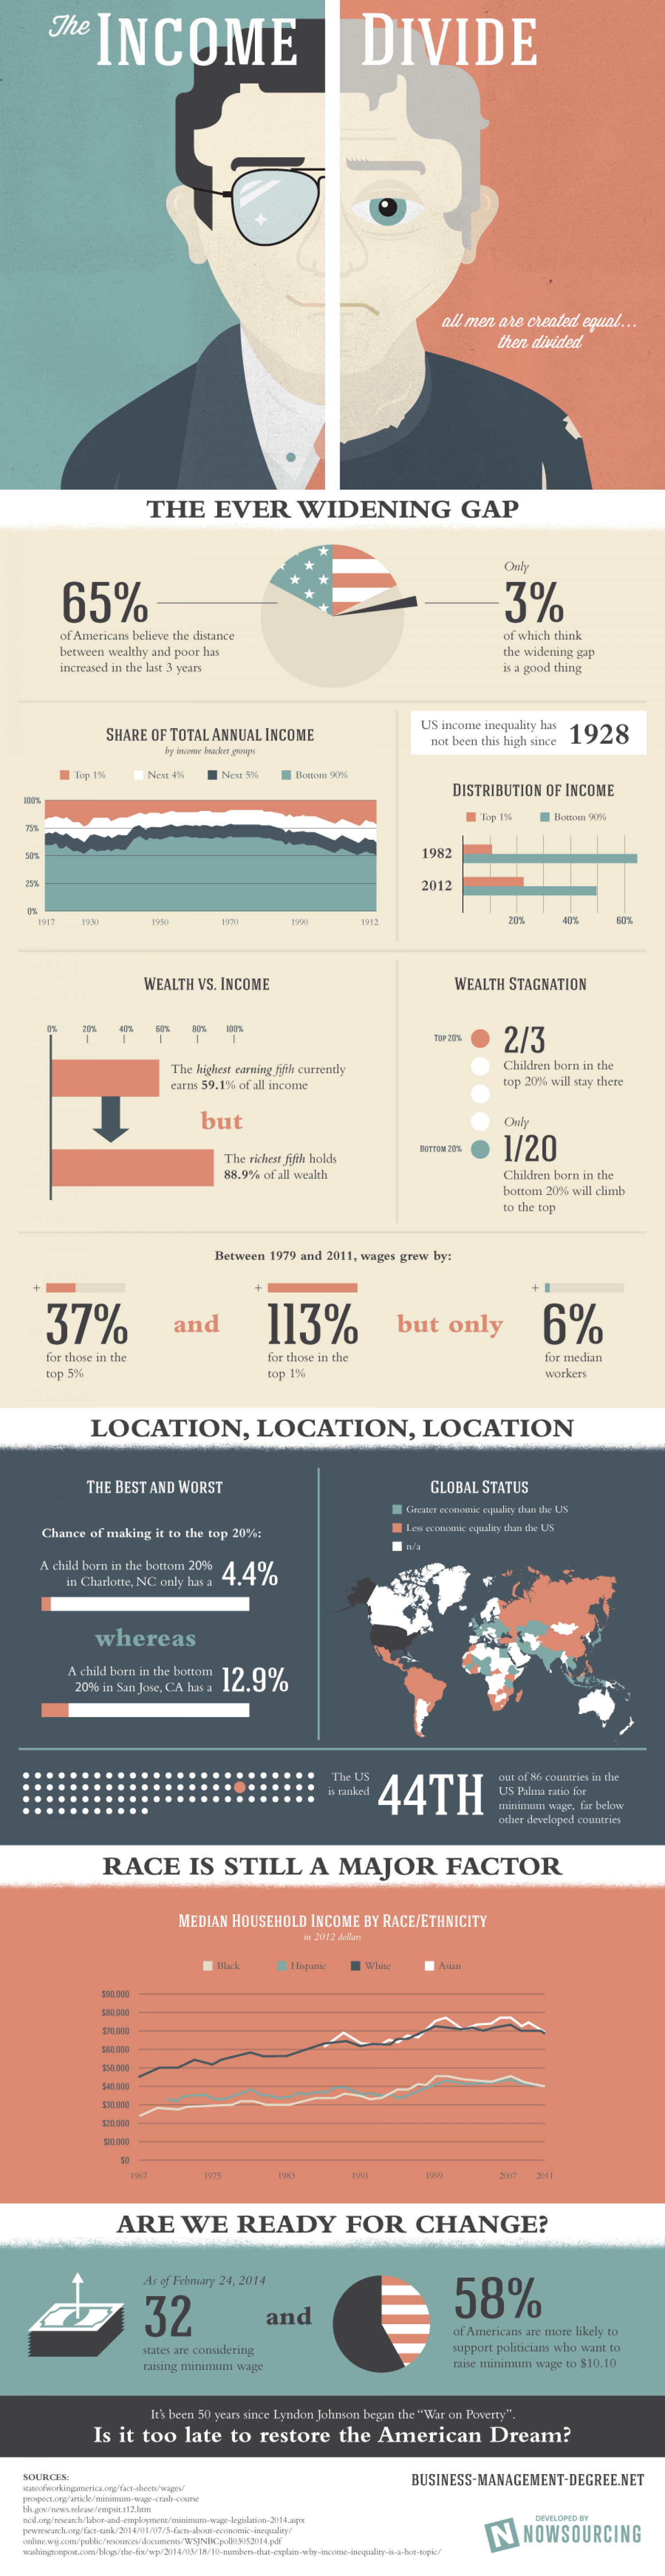 The Income Divide Infographic